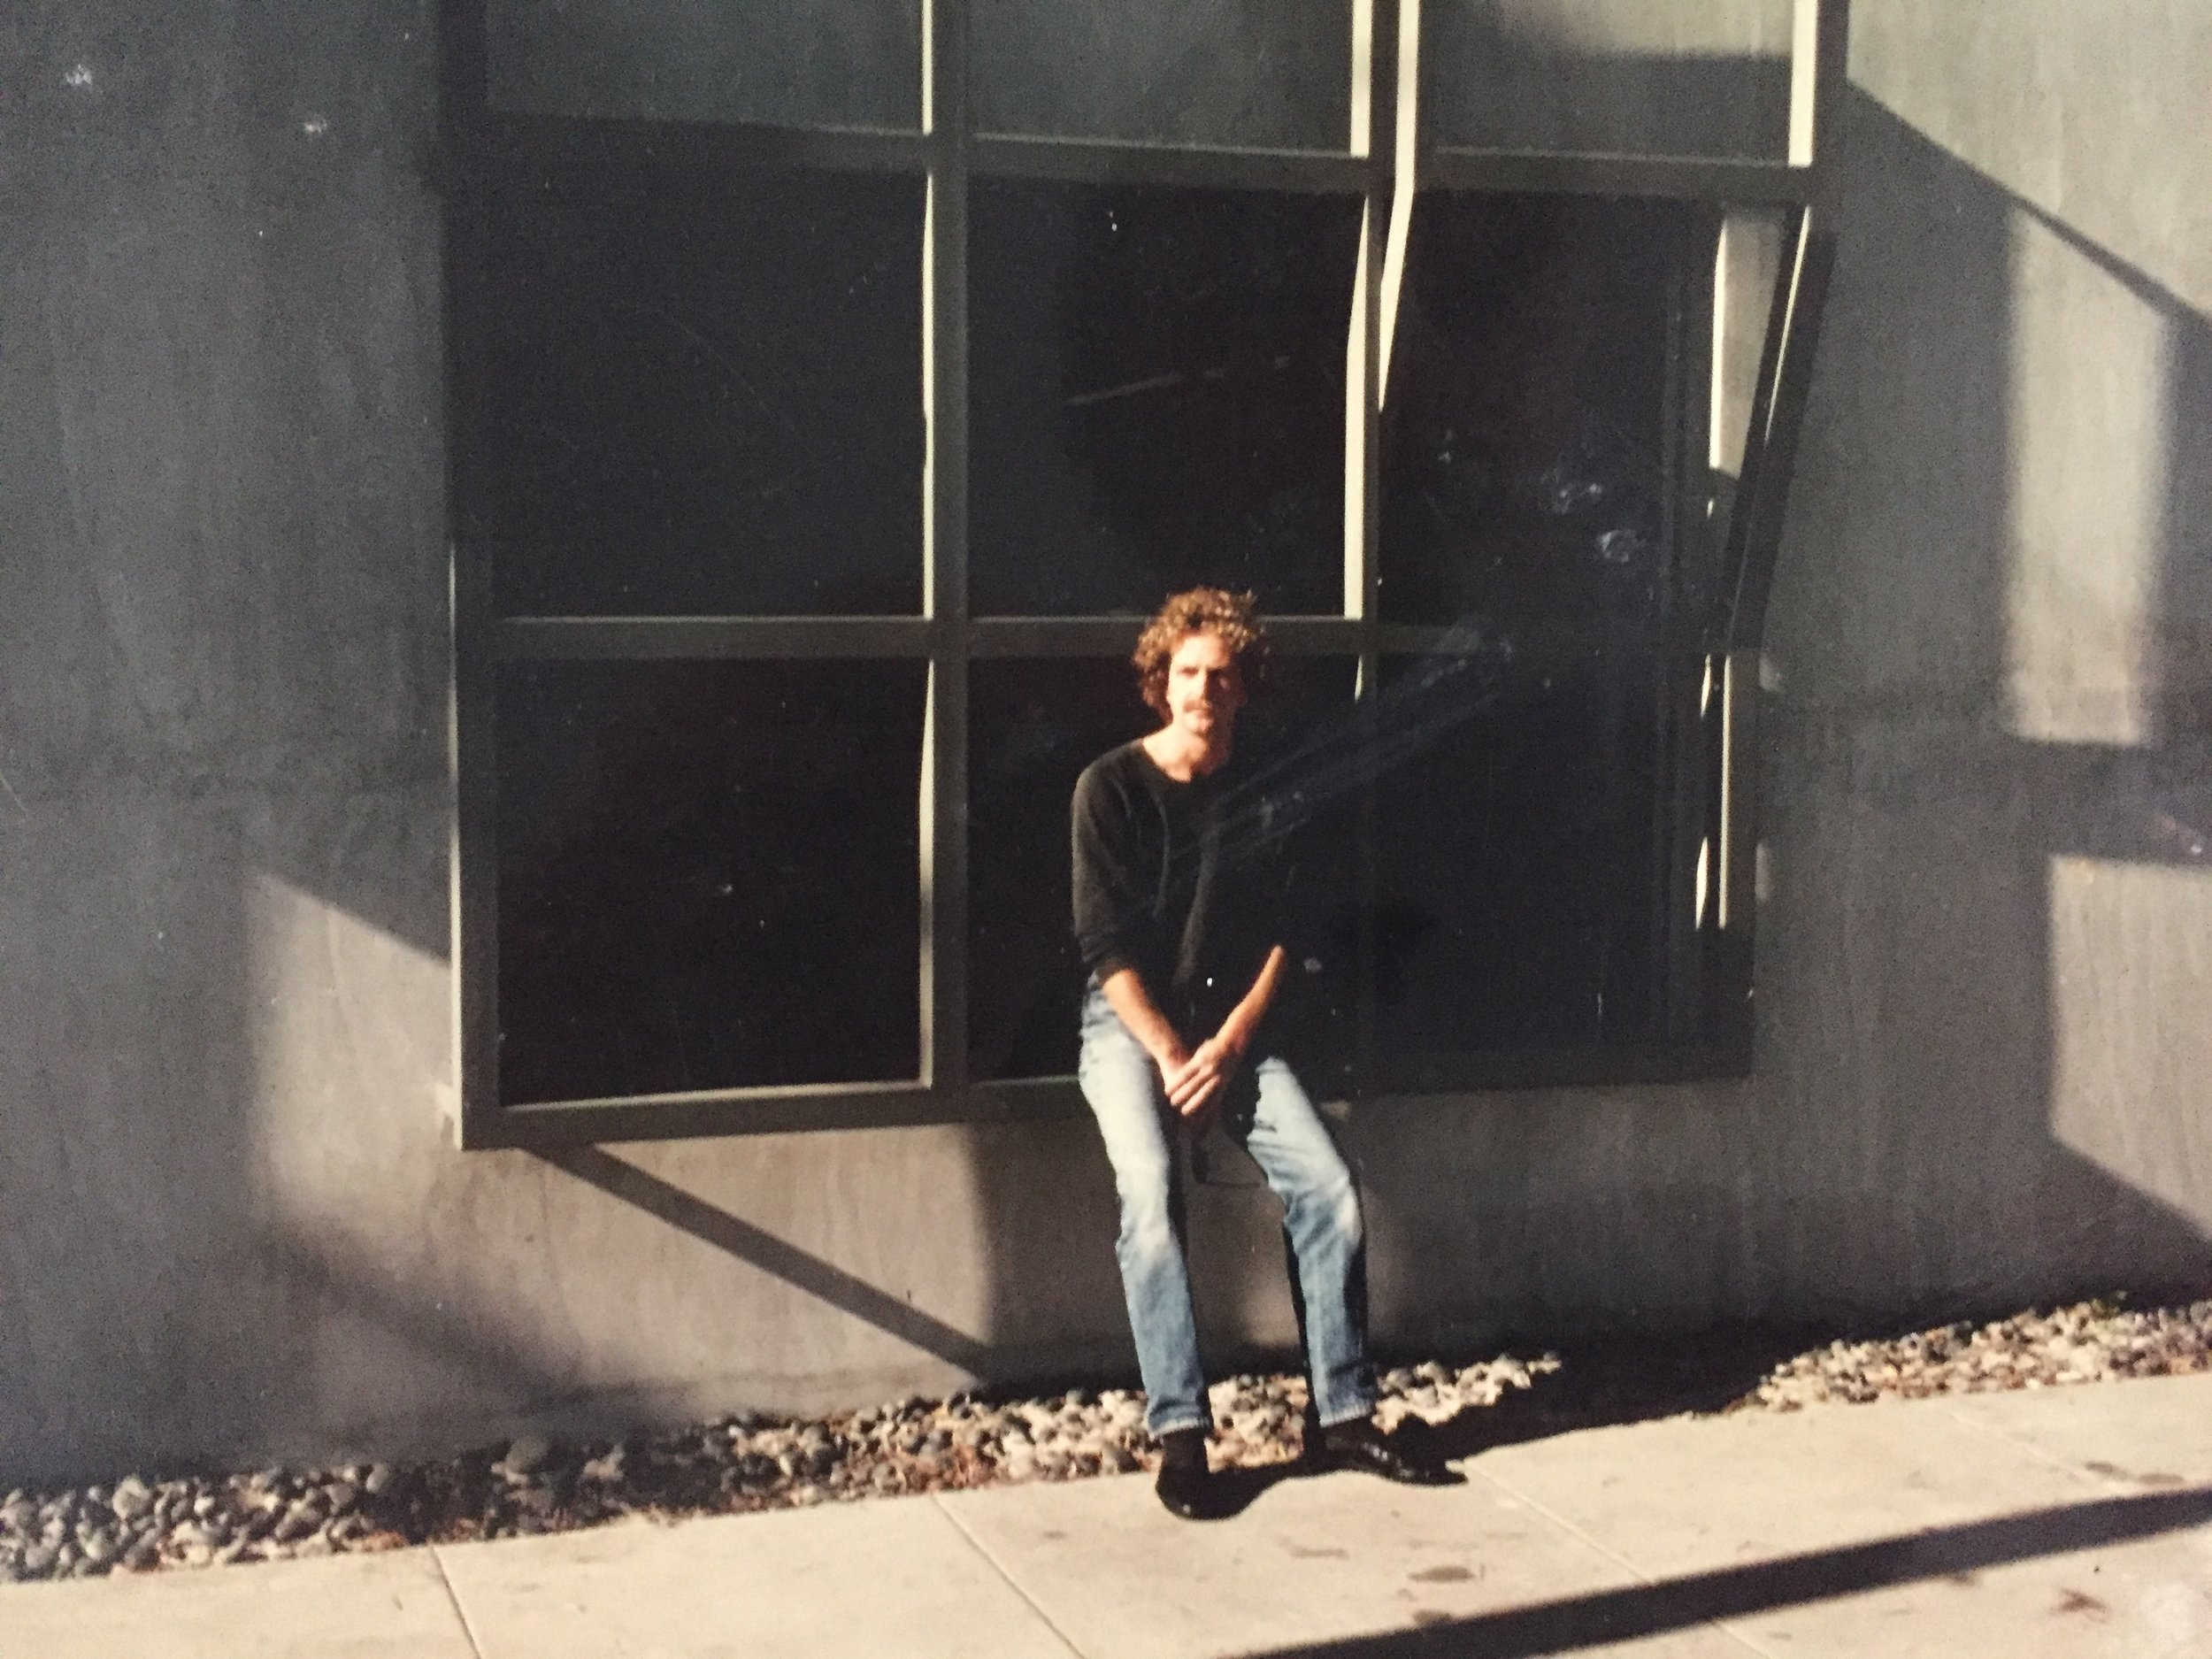 - Our story begins in 1978 when artist David McAuliffe, came to Venice CA, and founded Angles Gallery, where he exhibited numerous pioneers of minimalist art.